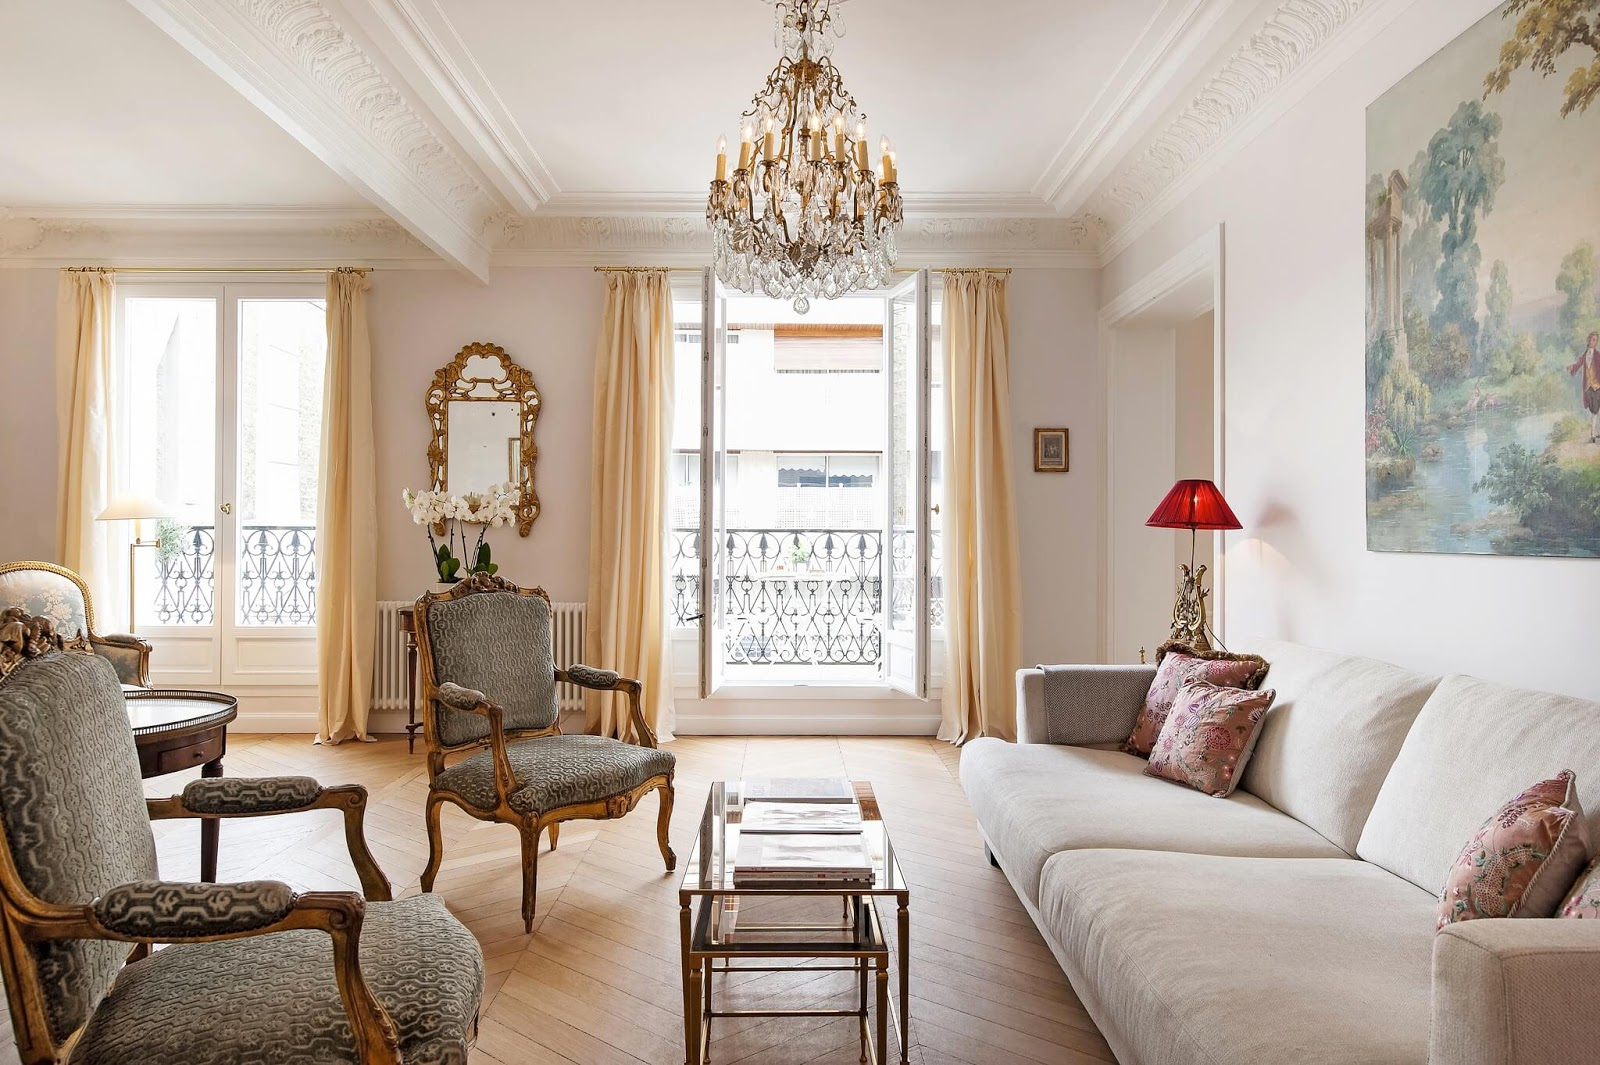 10 decorating ideas from a chic paris apartment hello lovely. Black Bedroom Furniture Sets. Home Design Ideas